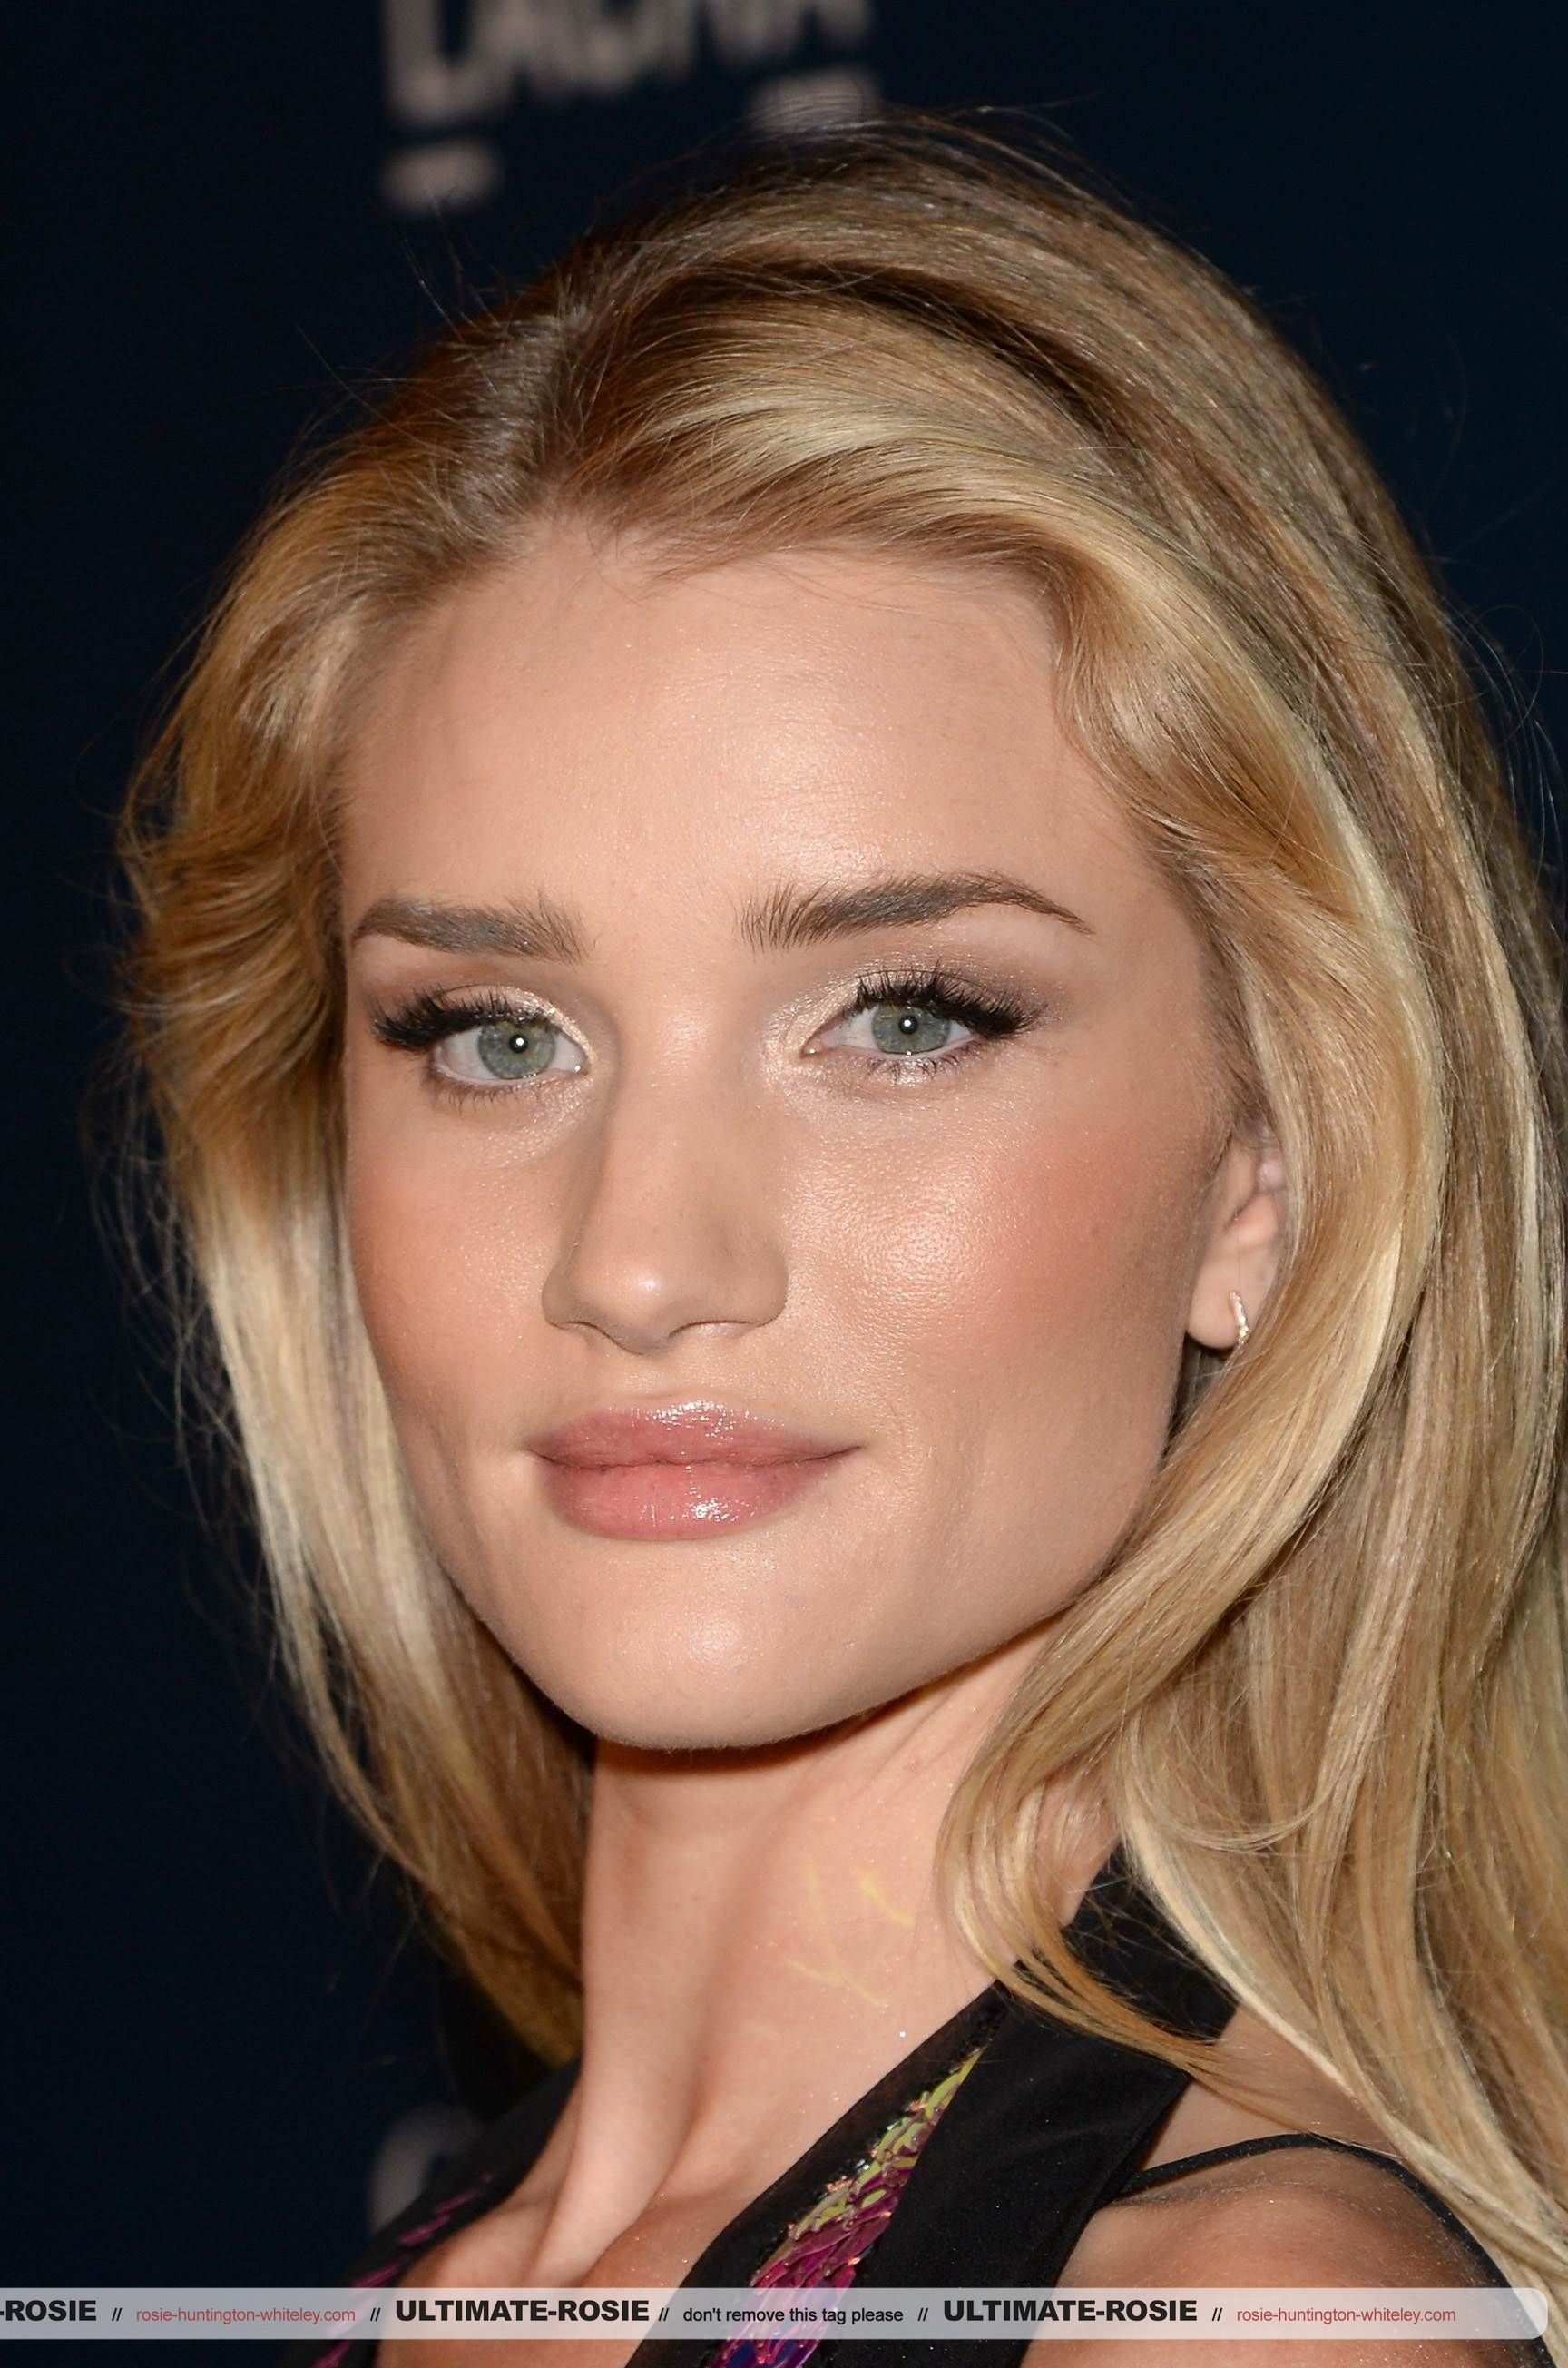 rosie huntington whiteley (With images) Flawless skin